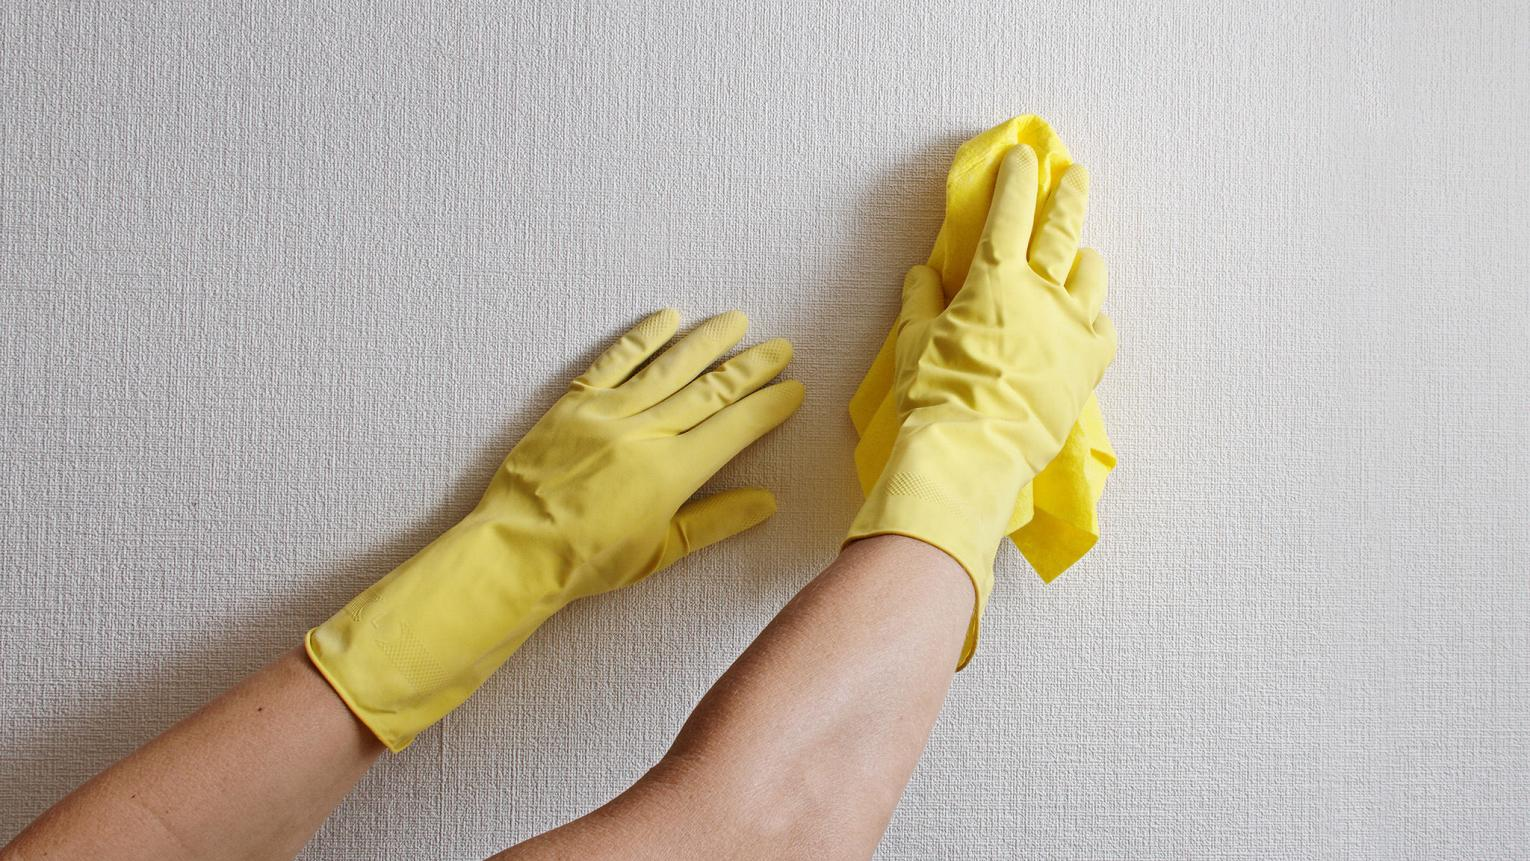 Prepare your walls for painting with this step-by-step guide to cleaning walls.